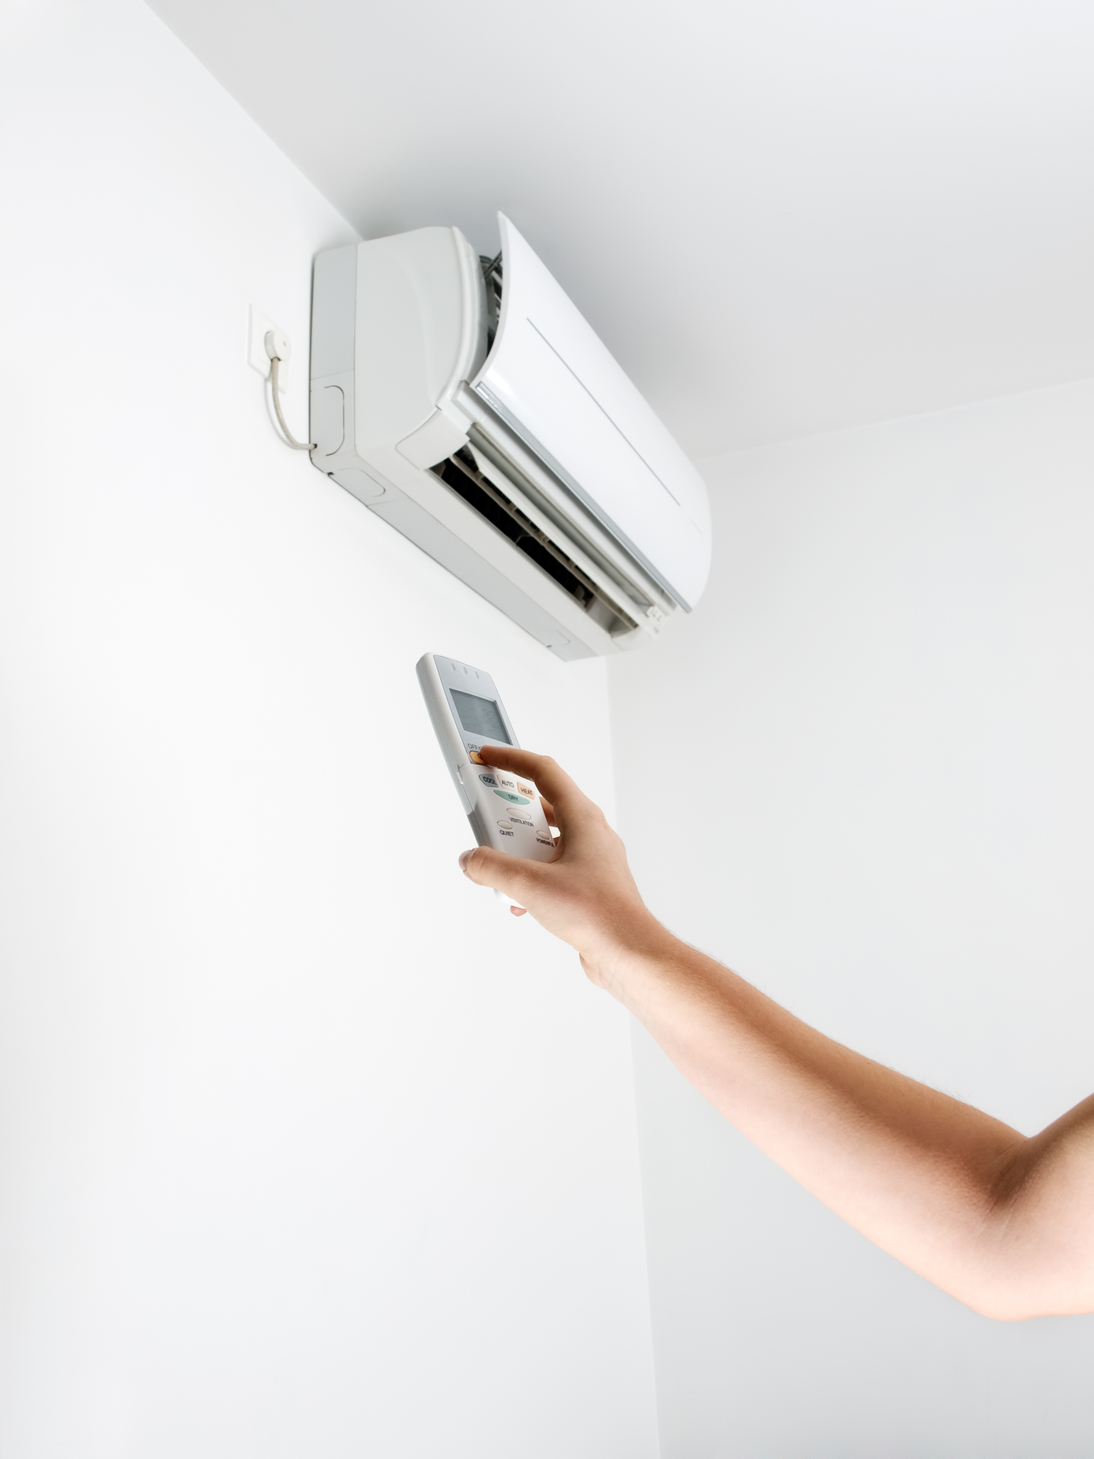 Try These Tips to Make Your Air Conditioner Last Longer